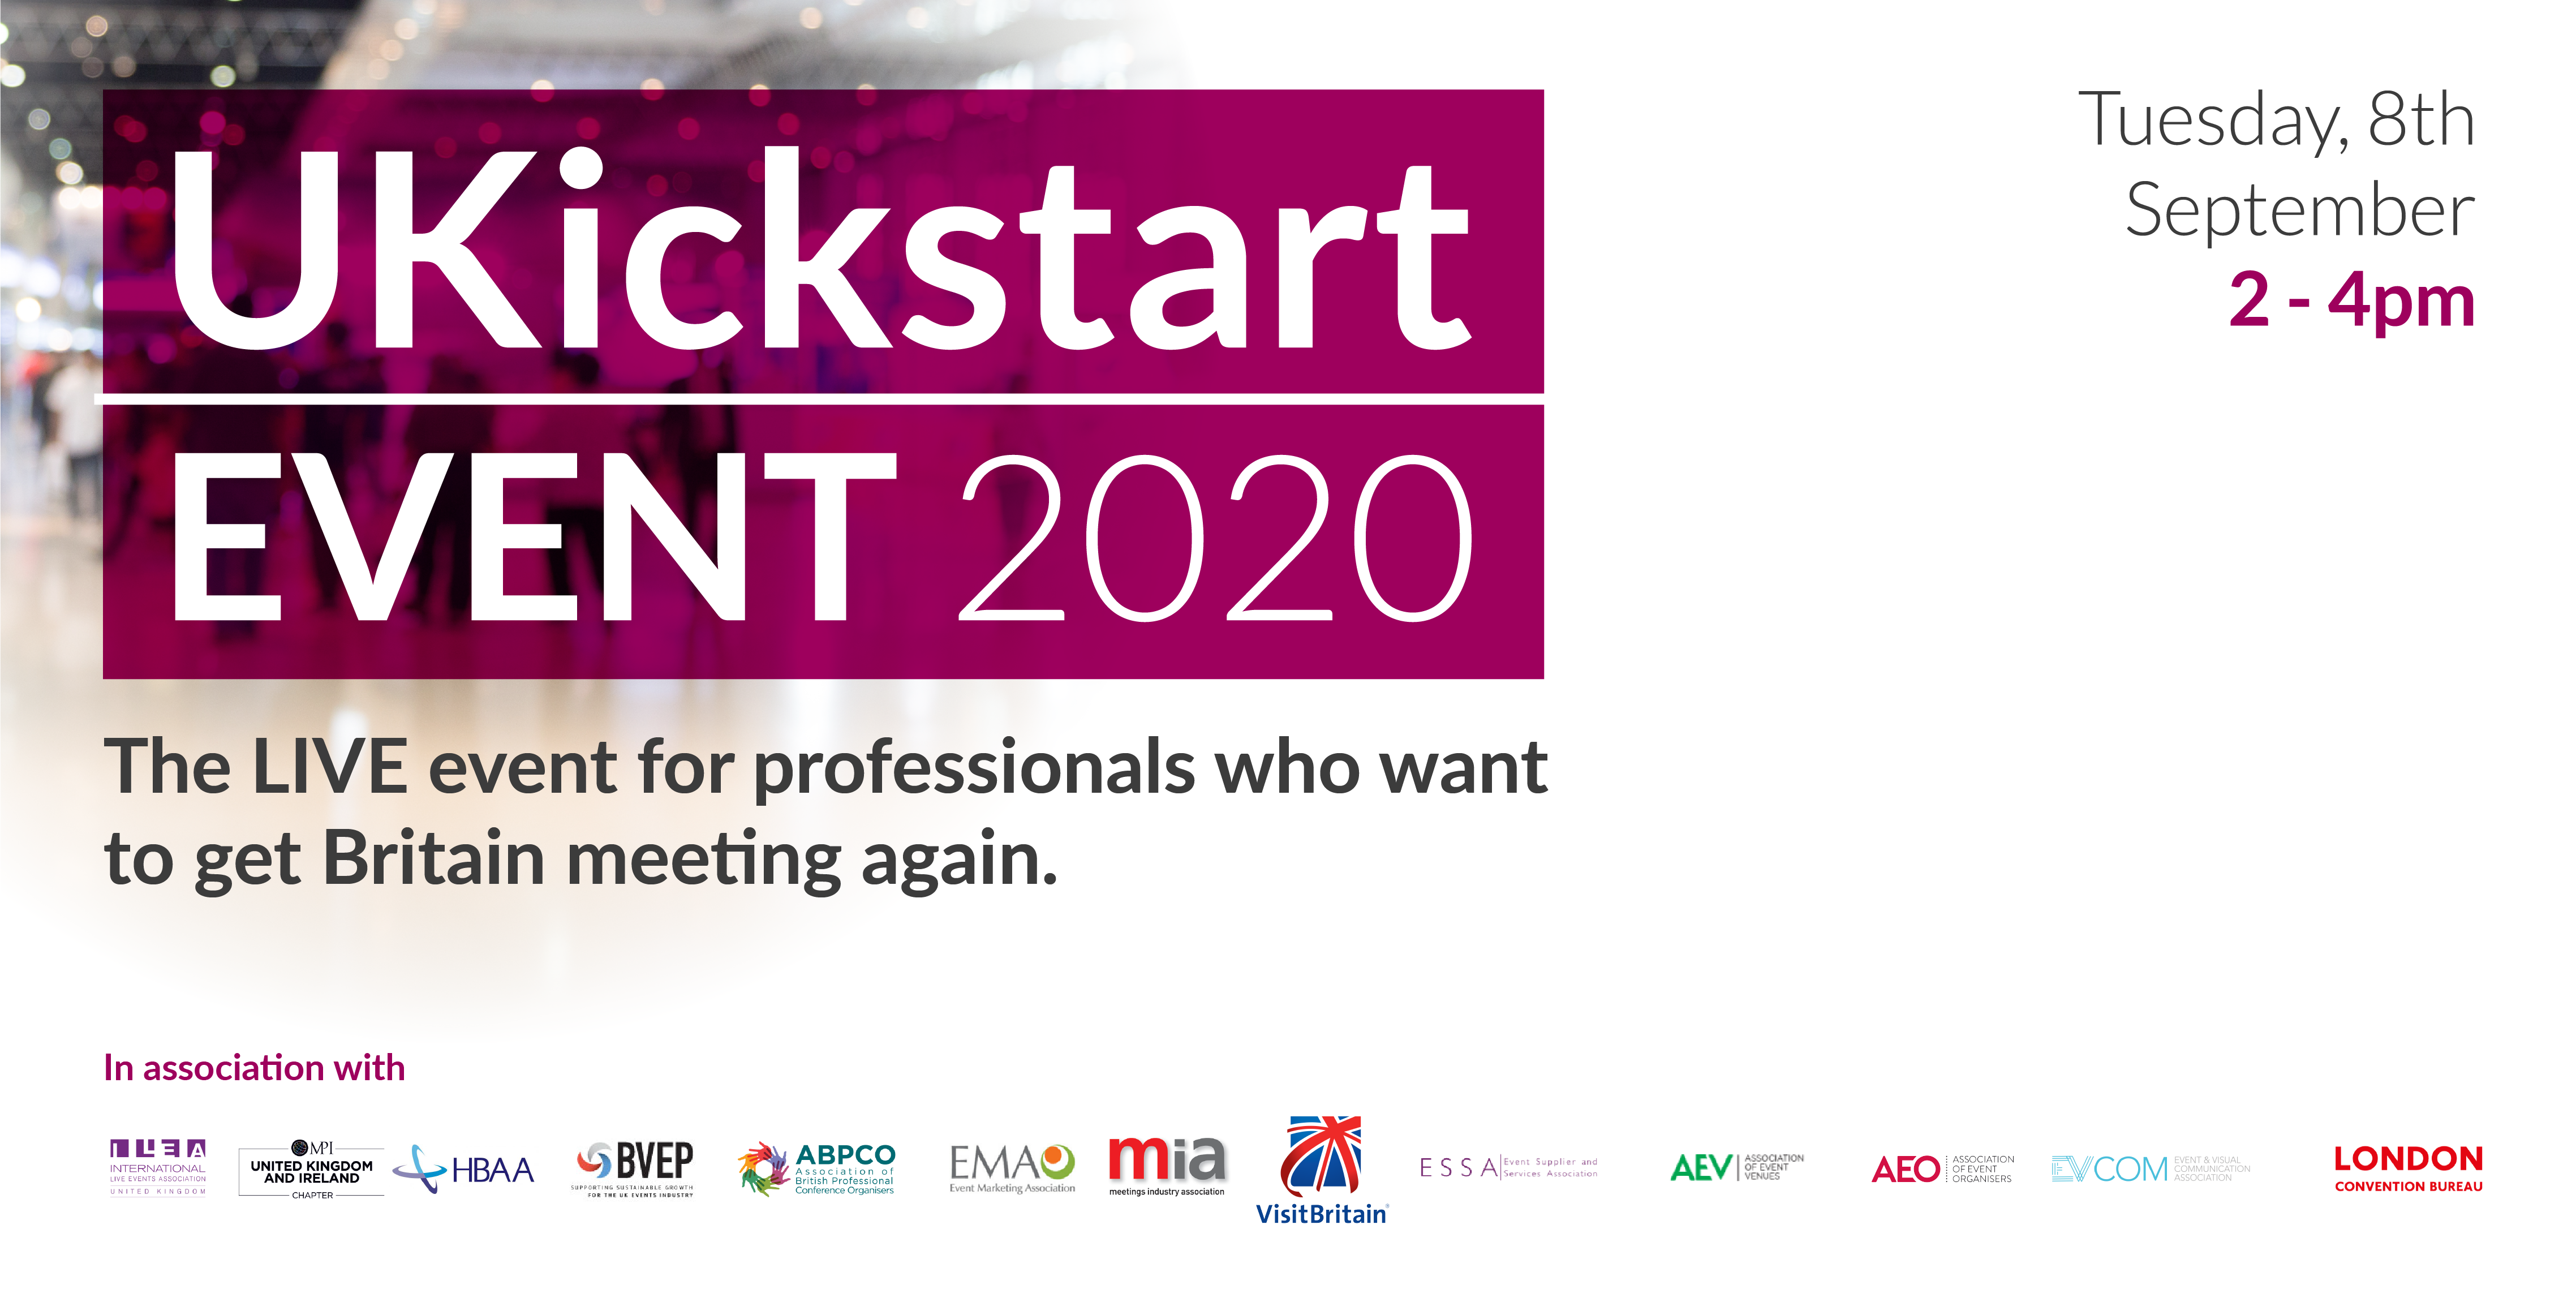 UKickstart Event 2020  header internal